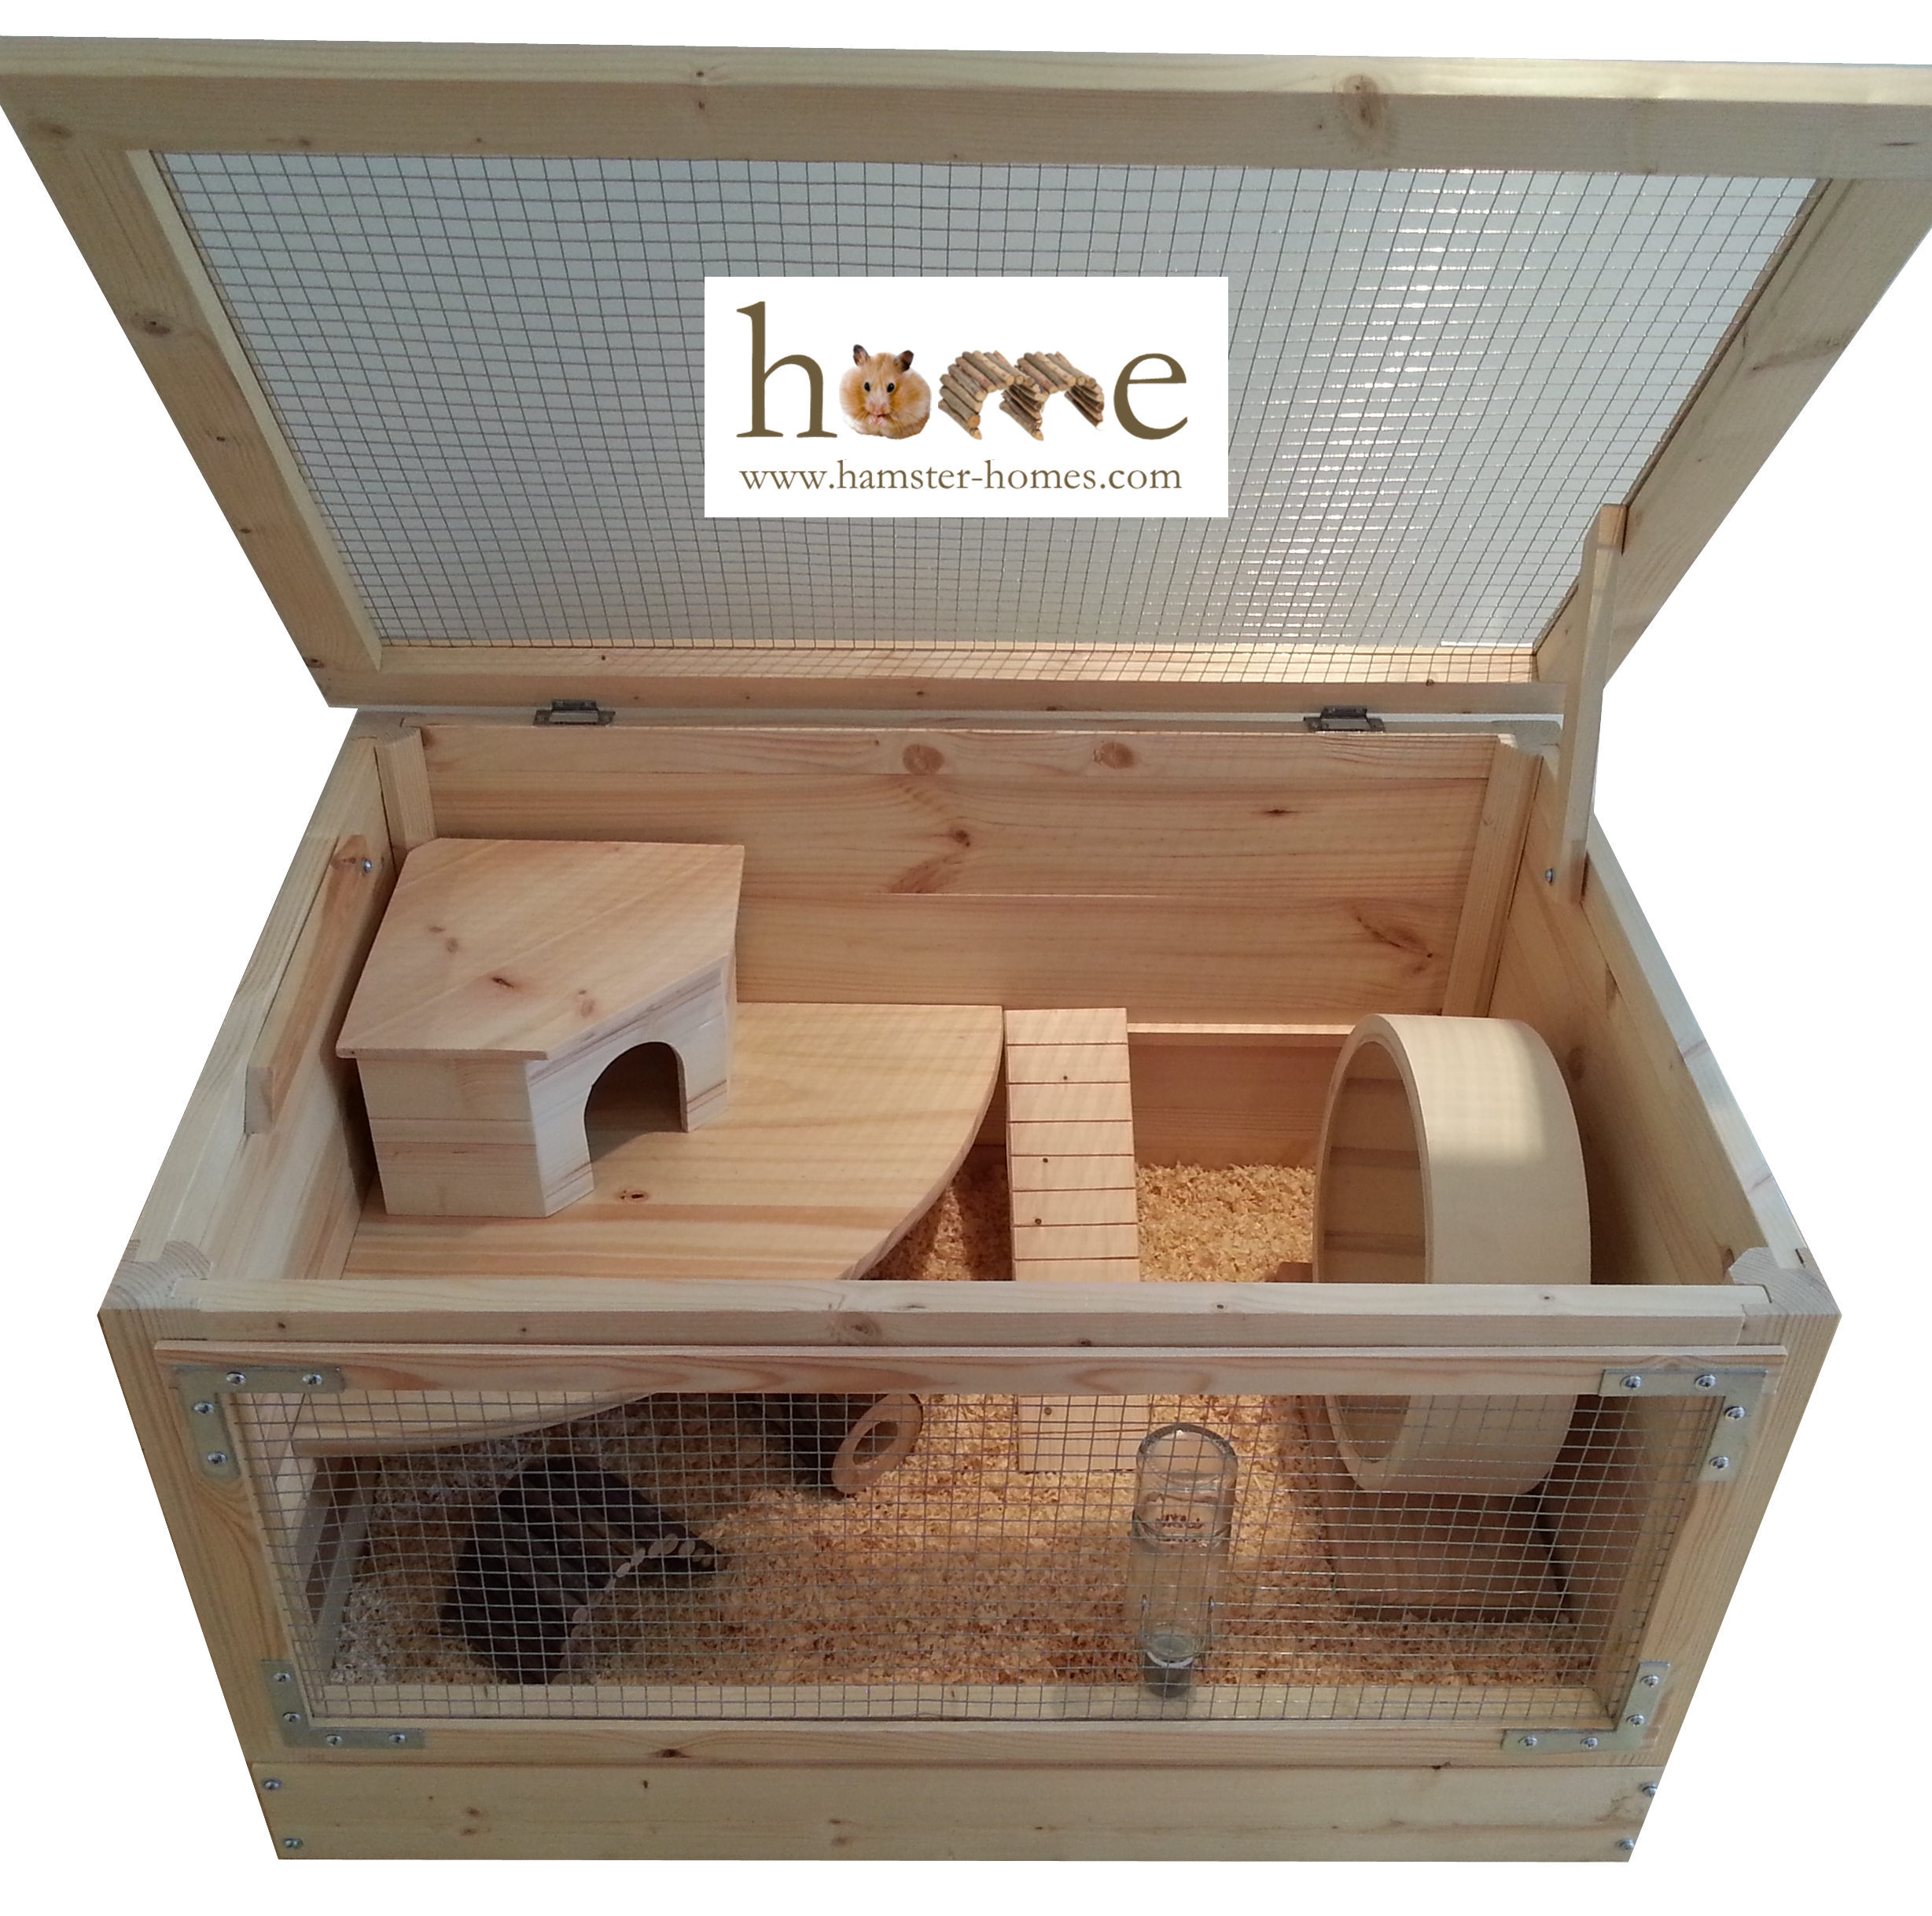 ... Brand / *Our Own Brand Products* / Large Wooden Hamster Cage 75x50cm